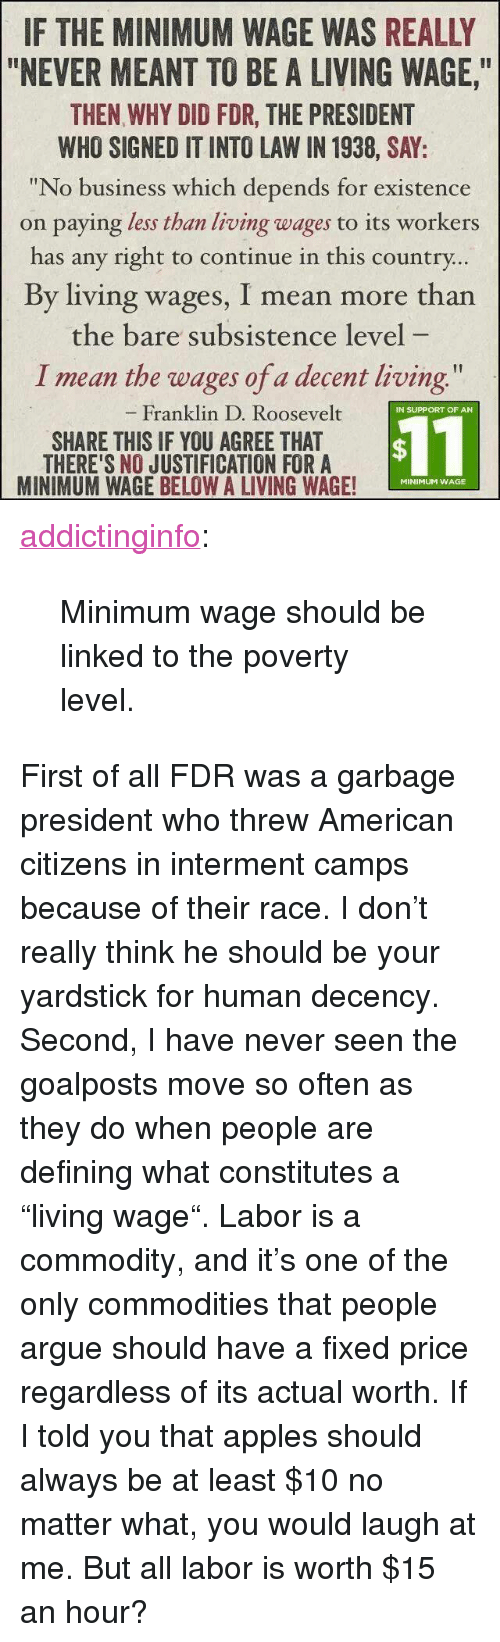 """Arguing, Tumblr, and American: IF THE MINIMUM WAGE WAS REALLY  """"NEVER MEANT TO BE A LIVING WAGE,  THEN WHY DID FDR, THE PRESIDENT  WHO SIGNED IT INTO LAW IN 1938, SAY:  """"No business which depends for existence  on paying less than living wages to its workers  has any right to continue in this country  By living wages, I mean more than  the bare subsistence level  I mean the wages of a decent living  Franklin D. Roosevelt  IN SUPPORT OF AN  SHARE THIS IF YOU AGREE THAT  THERE'S NO JUSTIFICATION FORA  MINIMUM WAGE BELOW A LIVING WAGE!  $11  MINIMUM WAGE <p><a href=""""http://addictinginfo.tumblr.com/post/83841892544/minimum-wage-should-be-linked-to-the-poverty"""" class=""""tumblr_blog"""">addictinginfo</a>:</p>  <blockquote><p>Minimum wage should be linked to the poverty level.</p></blockquote>  <p>First of all FDR was a garbage president who threw American citizens in interment camps because of their race. I don't really think he should be your yardstick for human decency.</p><p>Second, I have never seen the goalposts move so often as they do when people are defining what constitutes a """"living wage"""". Labor is a commodity, and it's one of the only commodities that people argue should have a fixed price regardless of its actual worth. If I told you that apples should always be at least $10 no matter what, you would laugh at me. But all labor is worth $15 an hour?</p>"""